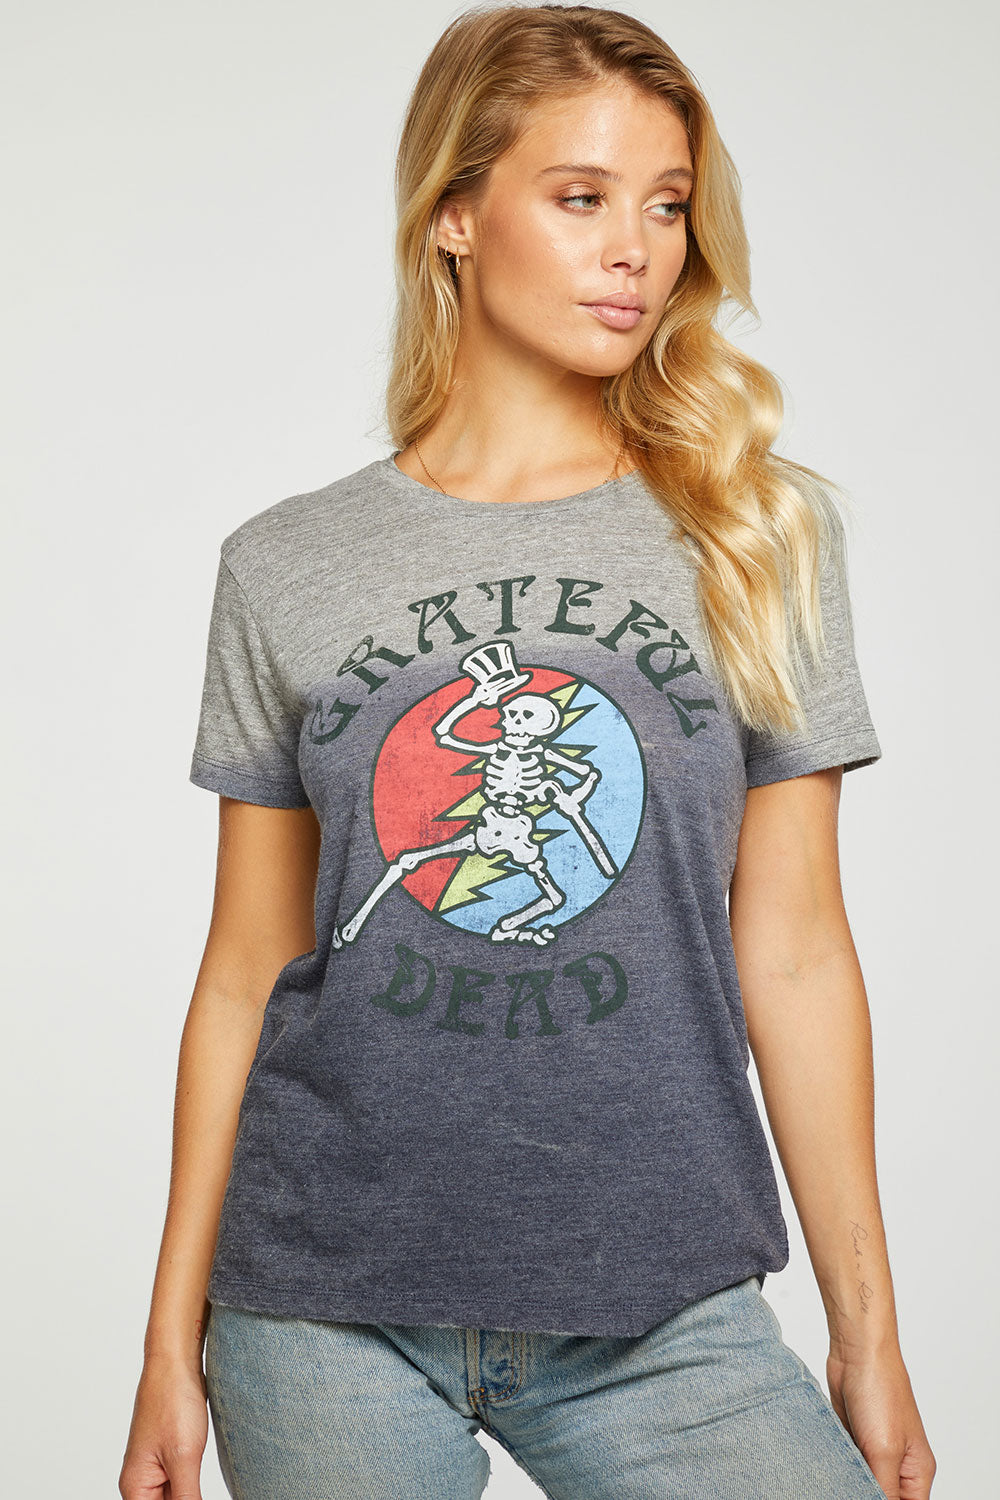 Grateful Dead - Dancing Skeleton WOMENS - chaserbrand